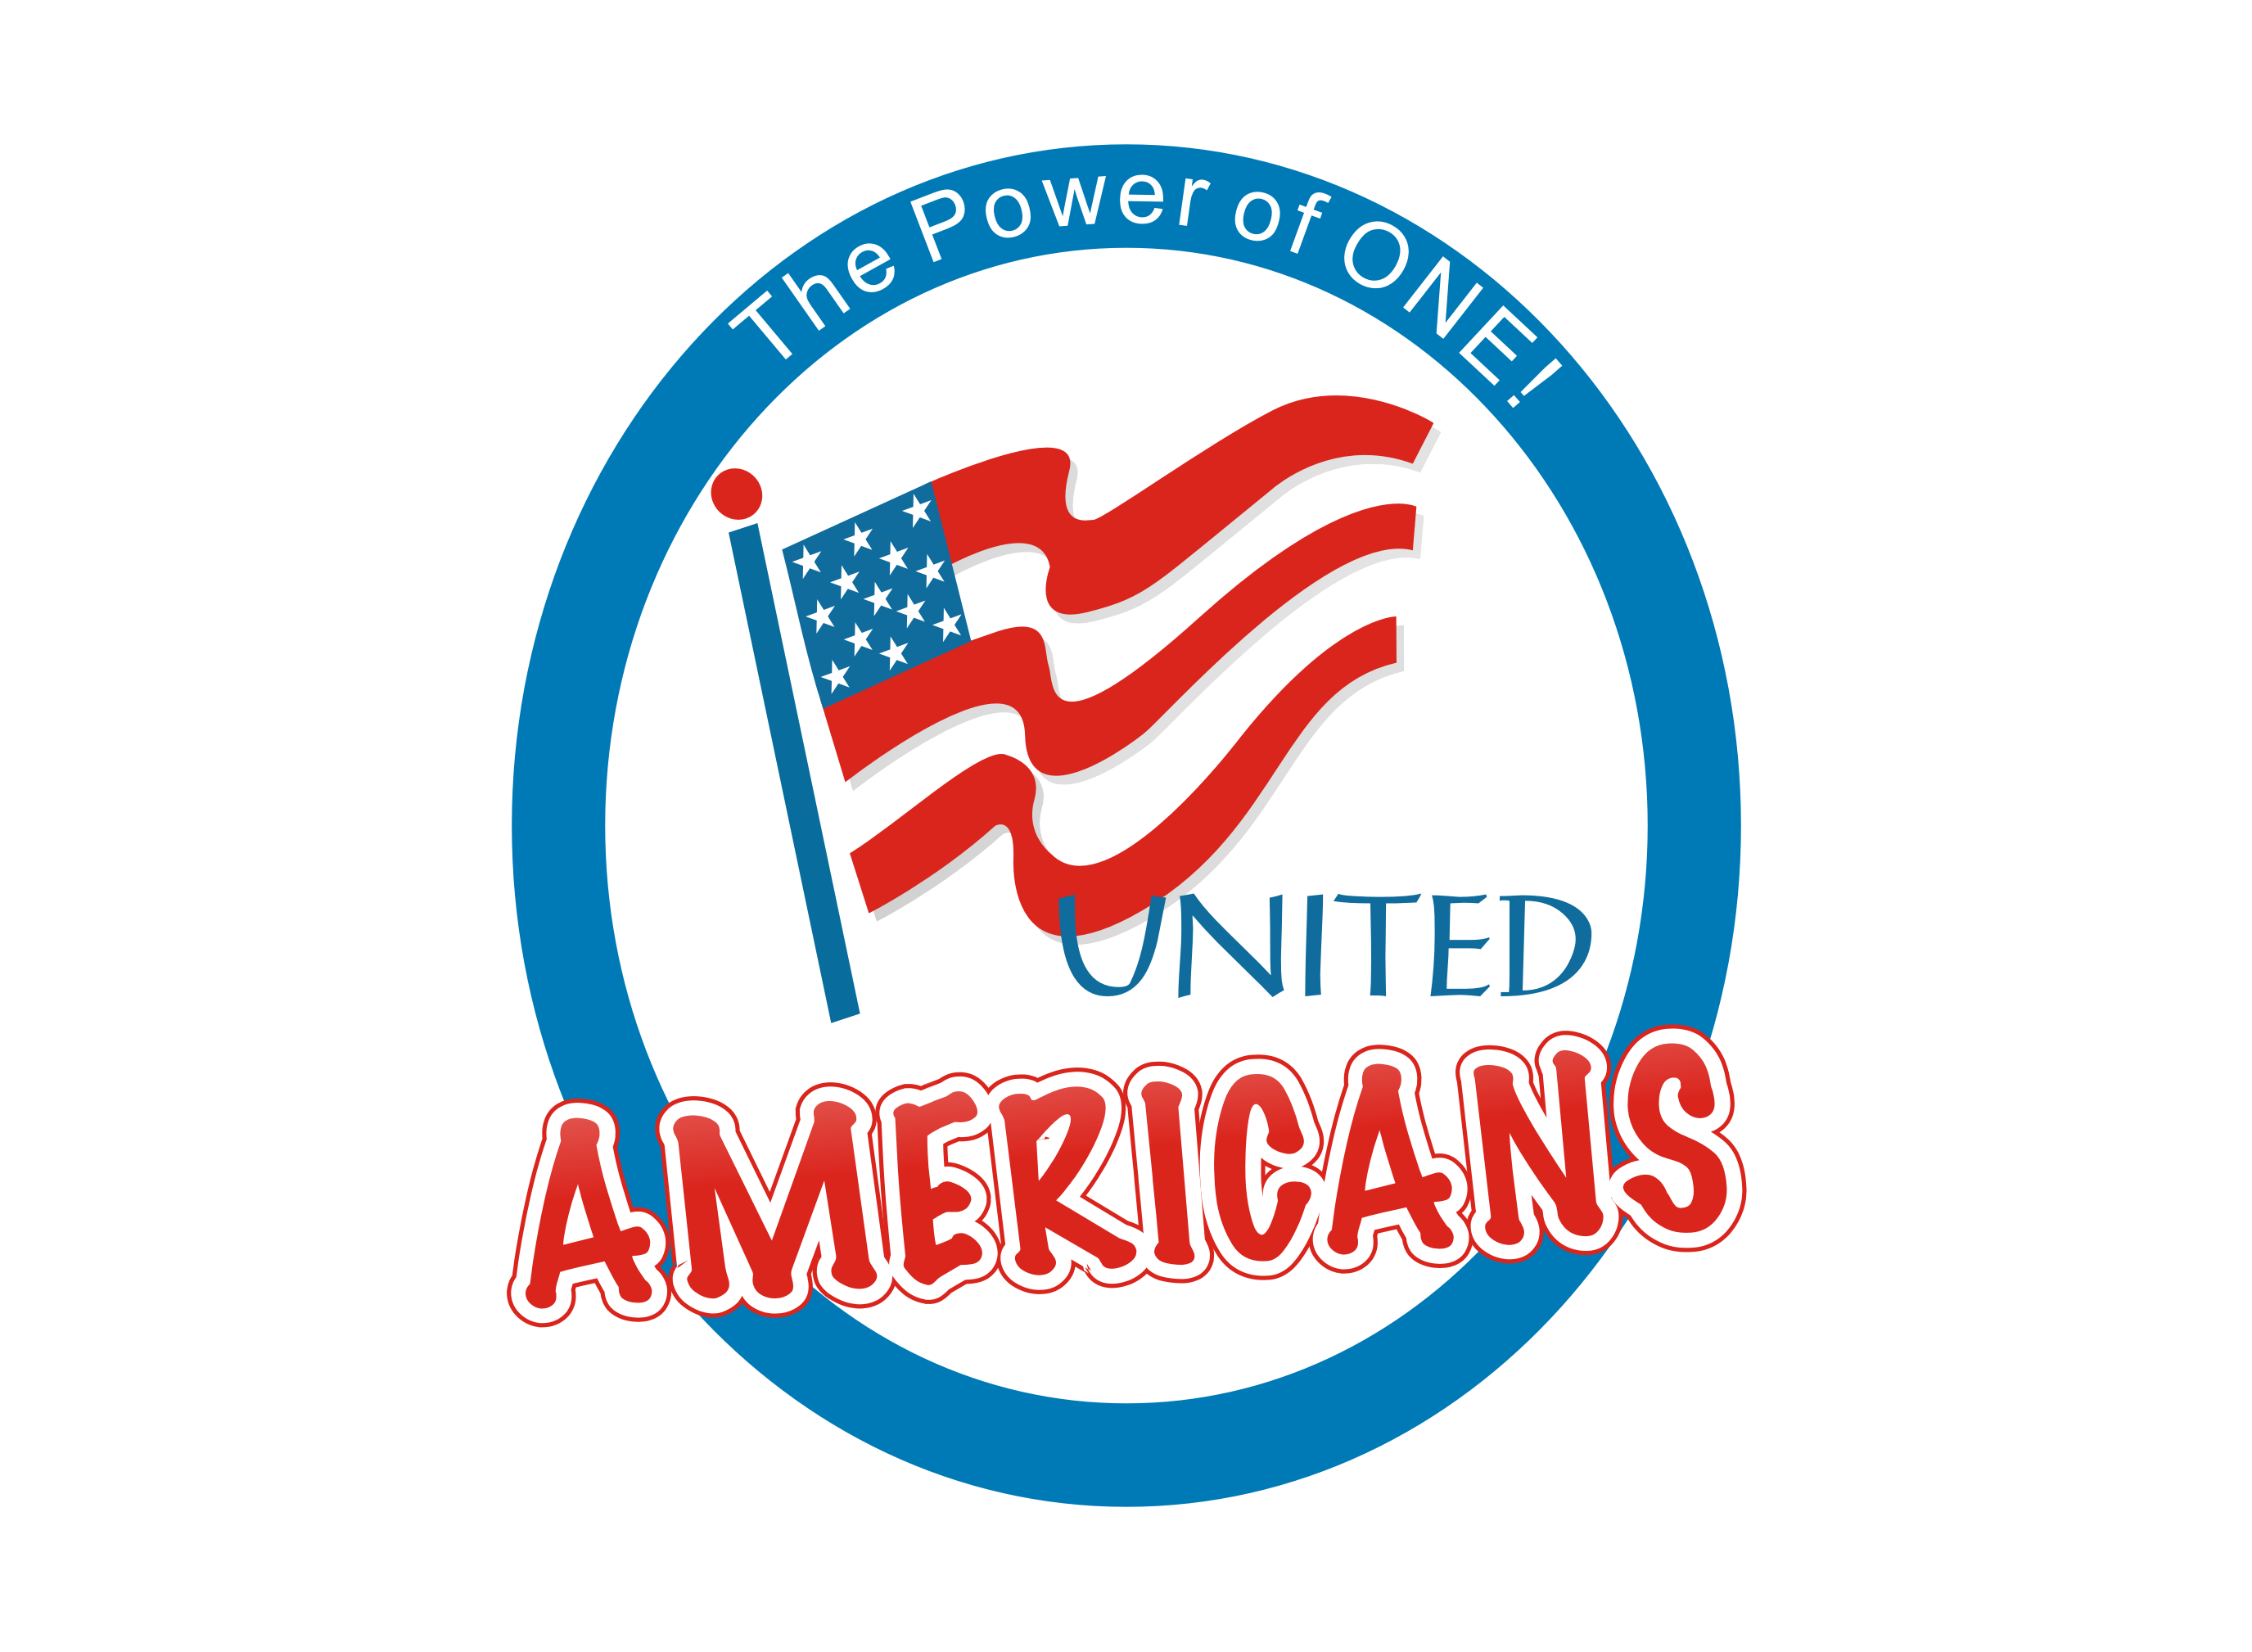 Logo Design by Shailender Kumar - Entry No. 29 in the Logo Design Contest Creative Logo Design for United Americans.